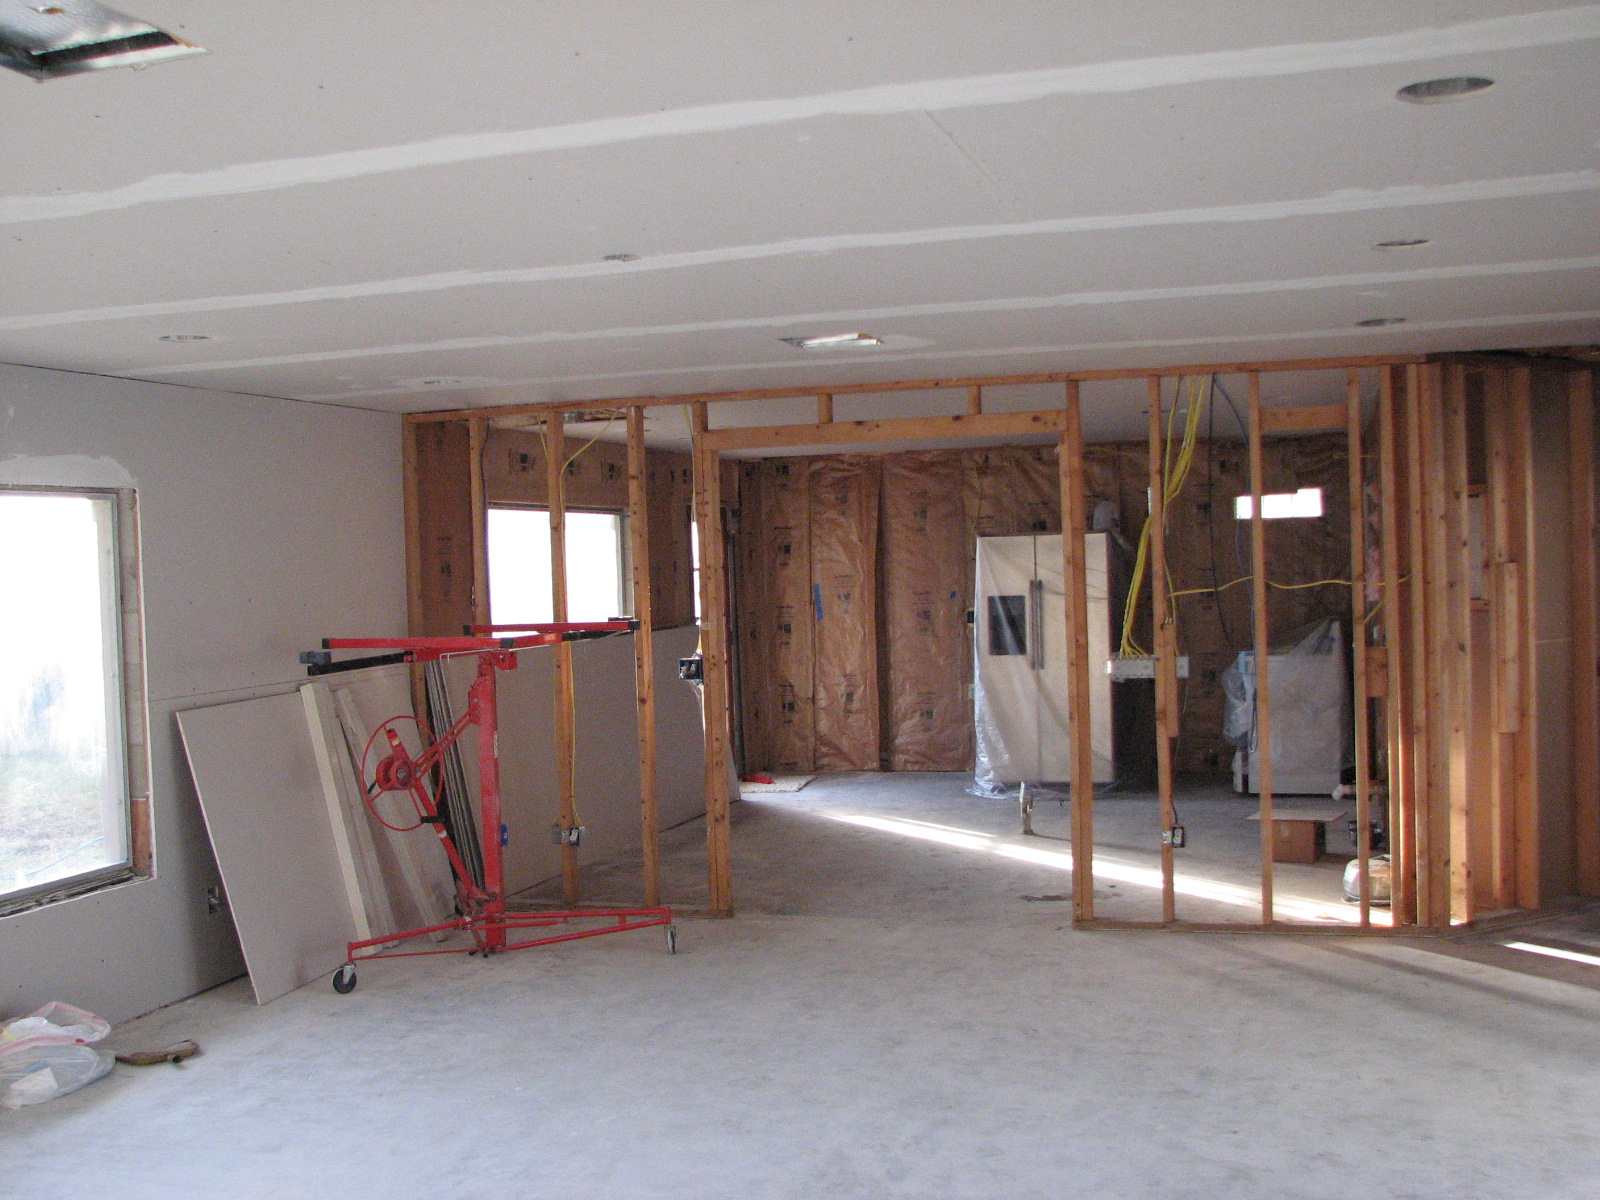 Melbourne,FL Drywall Contractor